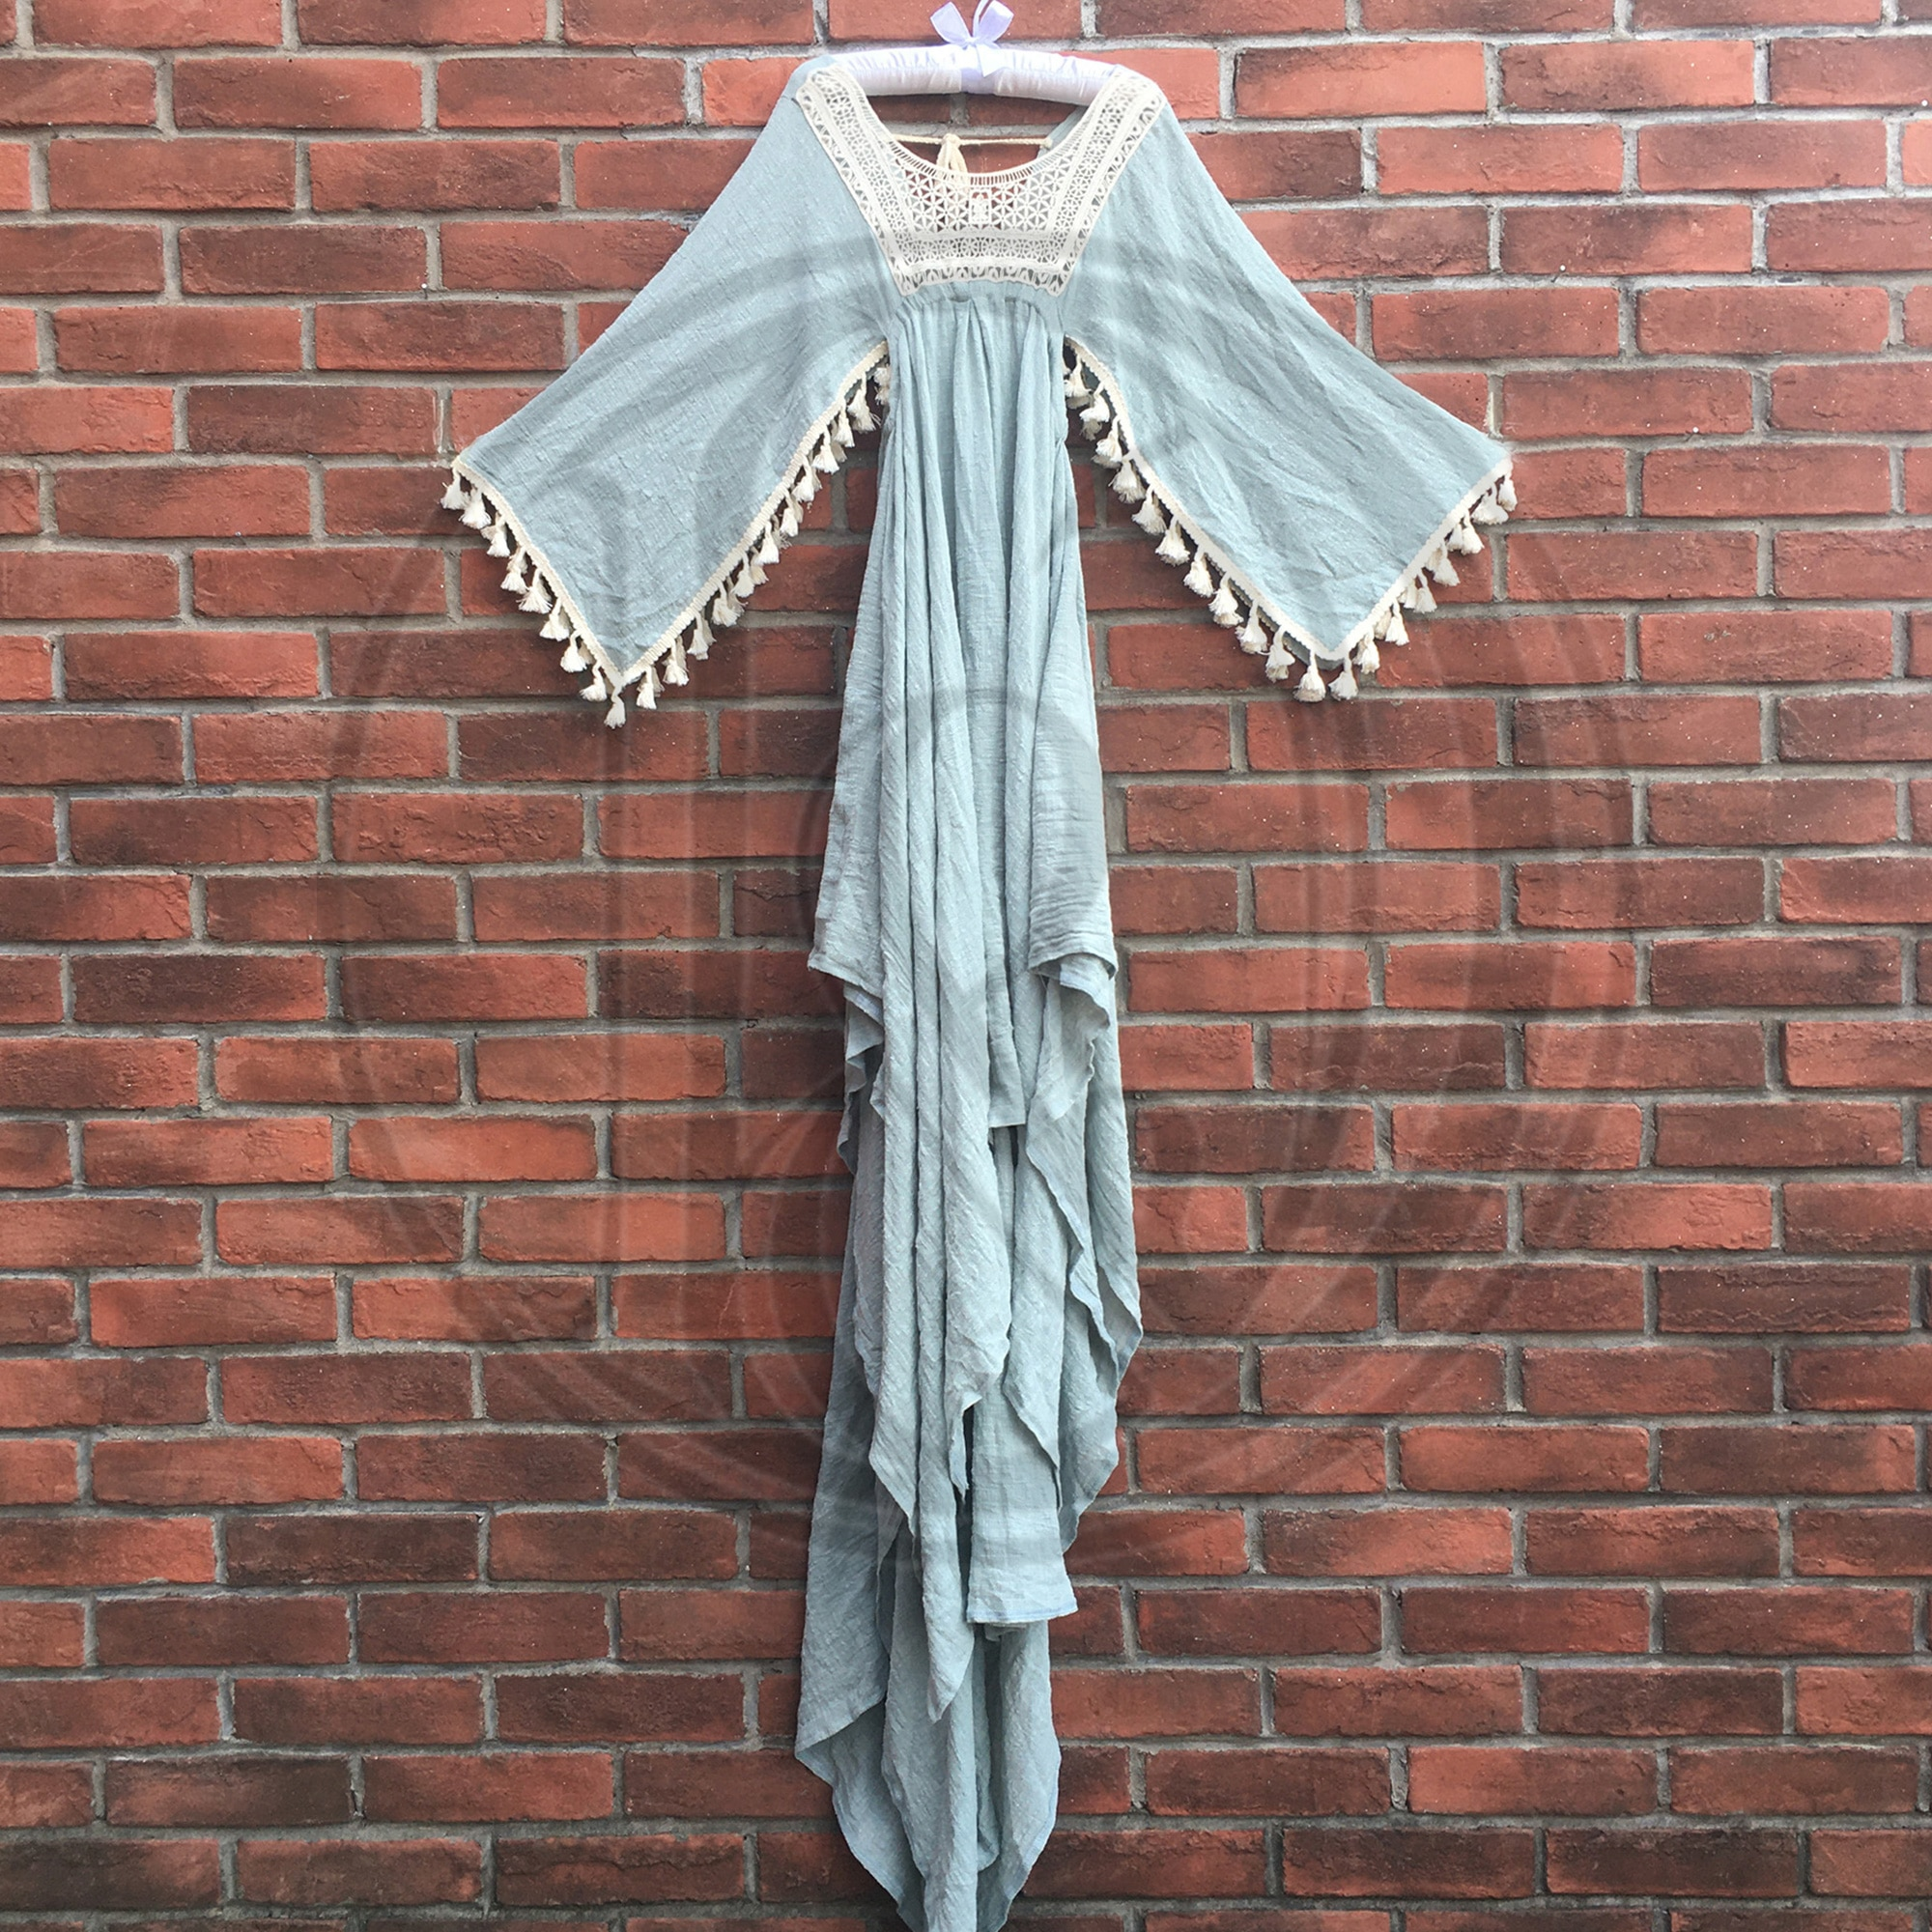 Boho Photo Shoot Princess Vintage Embroidery Cotton Little Girl Robe Kid Evening Party Dess for Children Photography Accessories enlarge